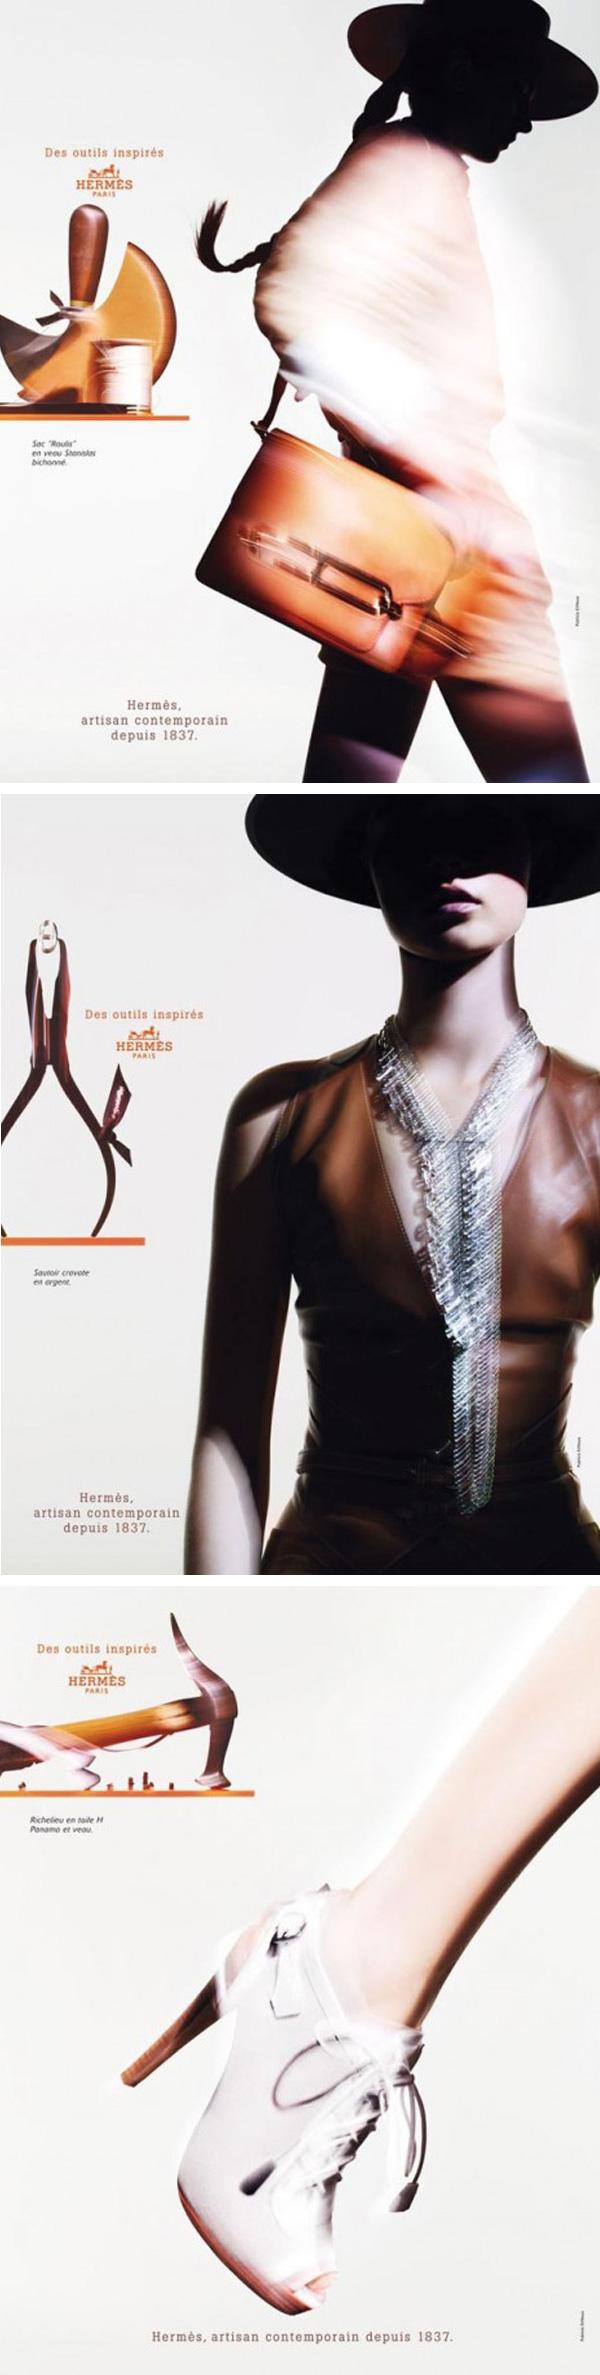 Sélection inspiration #9 HERMES | MRG LAB BLOG creative experience